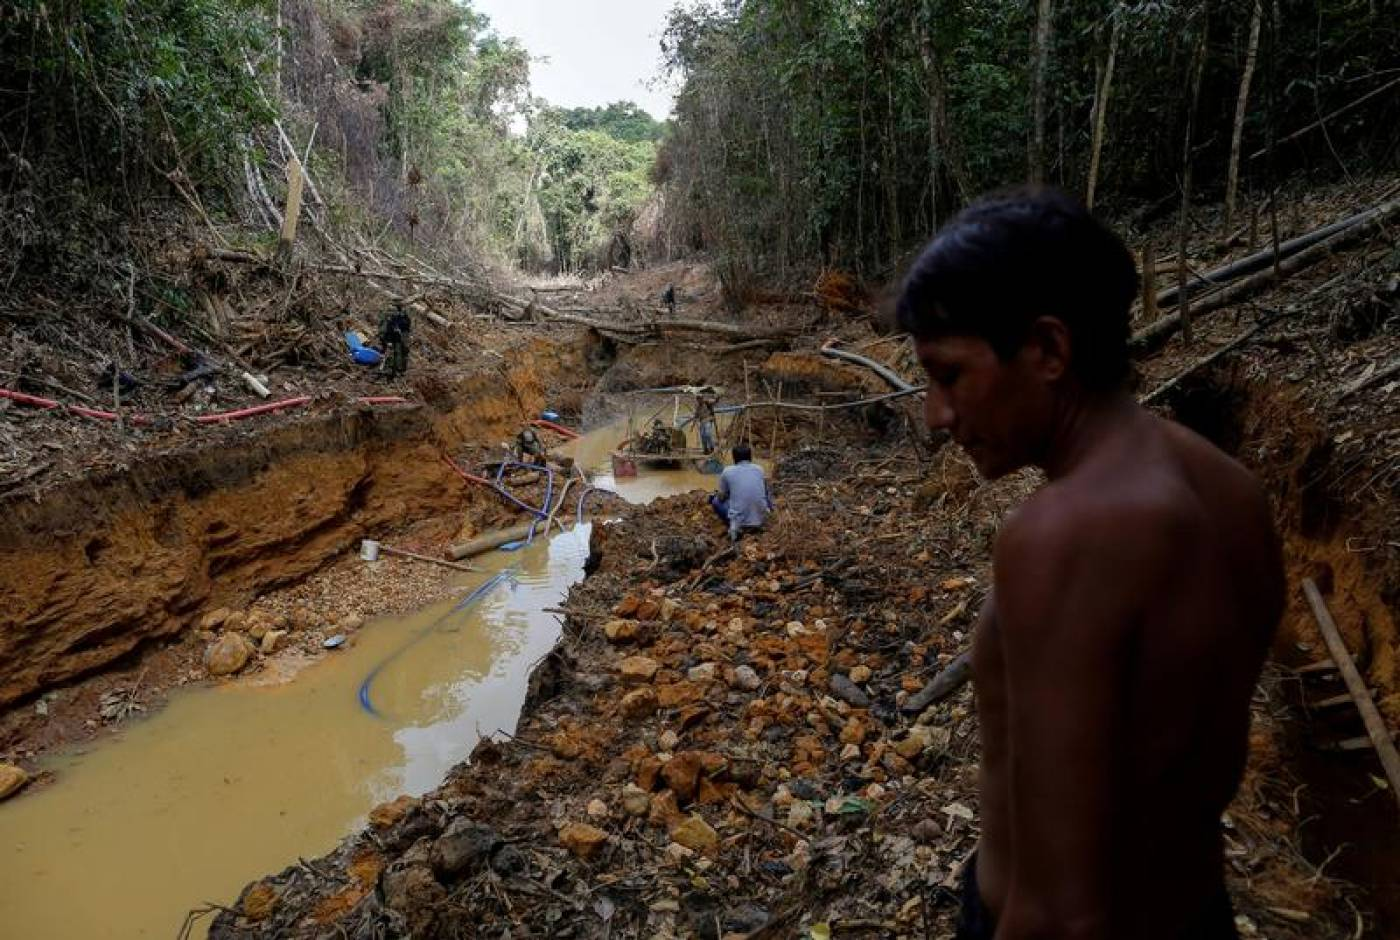 Amazon leaders demand illegal miners stay away to protect tribal lives